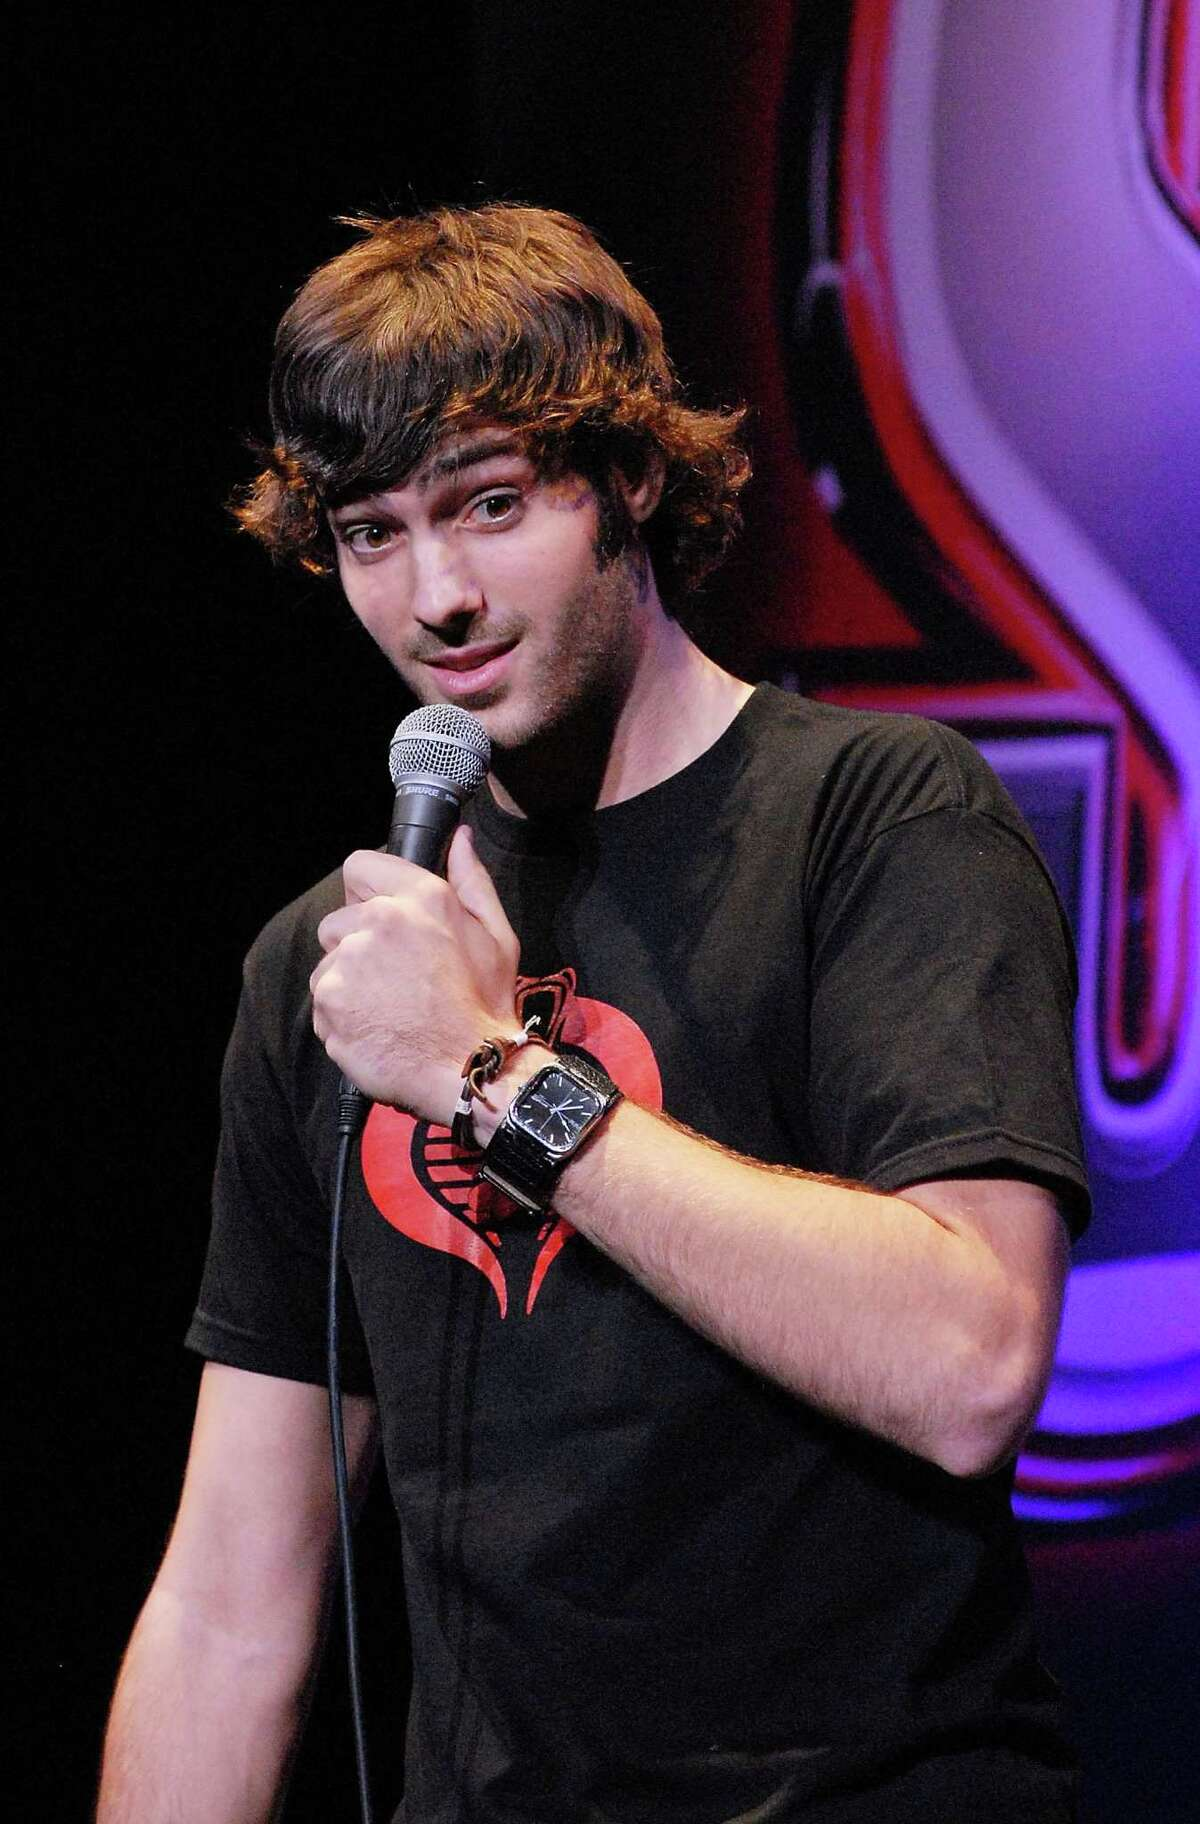 COMIC SHOW: Comedian Jeff Dye will perform at The Stress Factory in Bridgeport Thursday-Saturday, Jan. 7-9. Tickets are at Bridgeport.StressFactory.com.